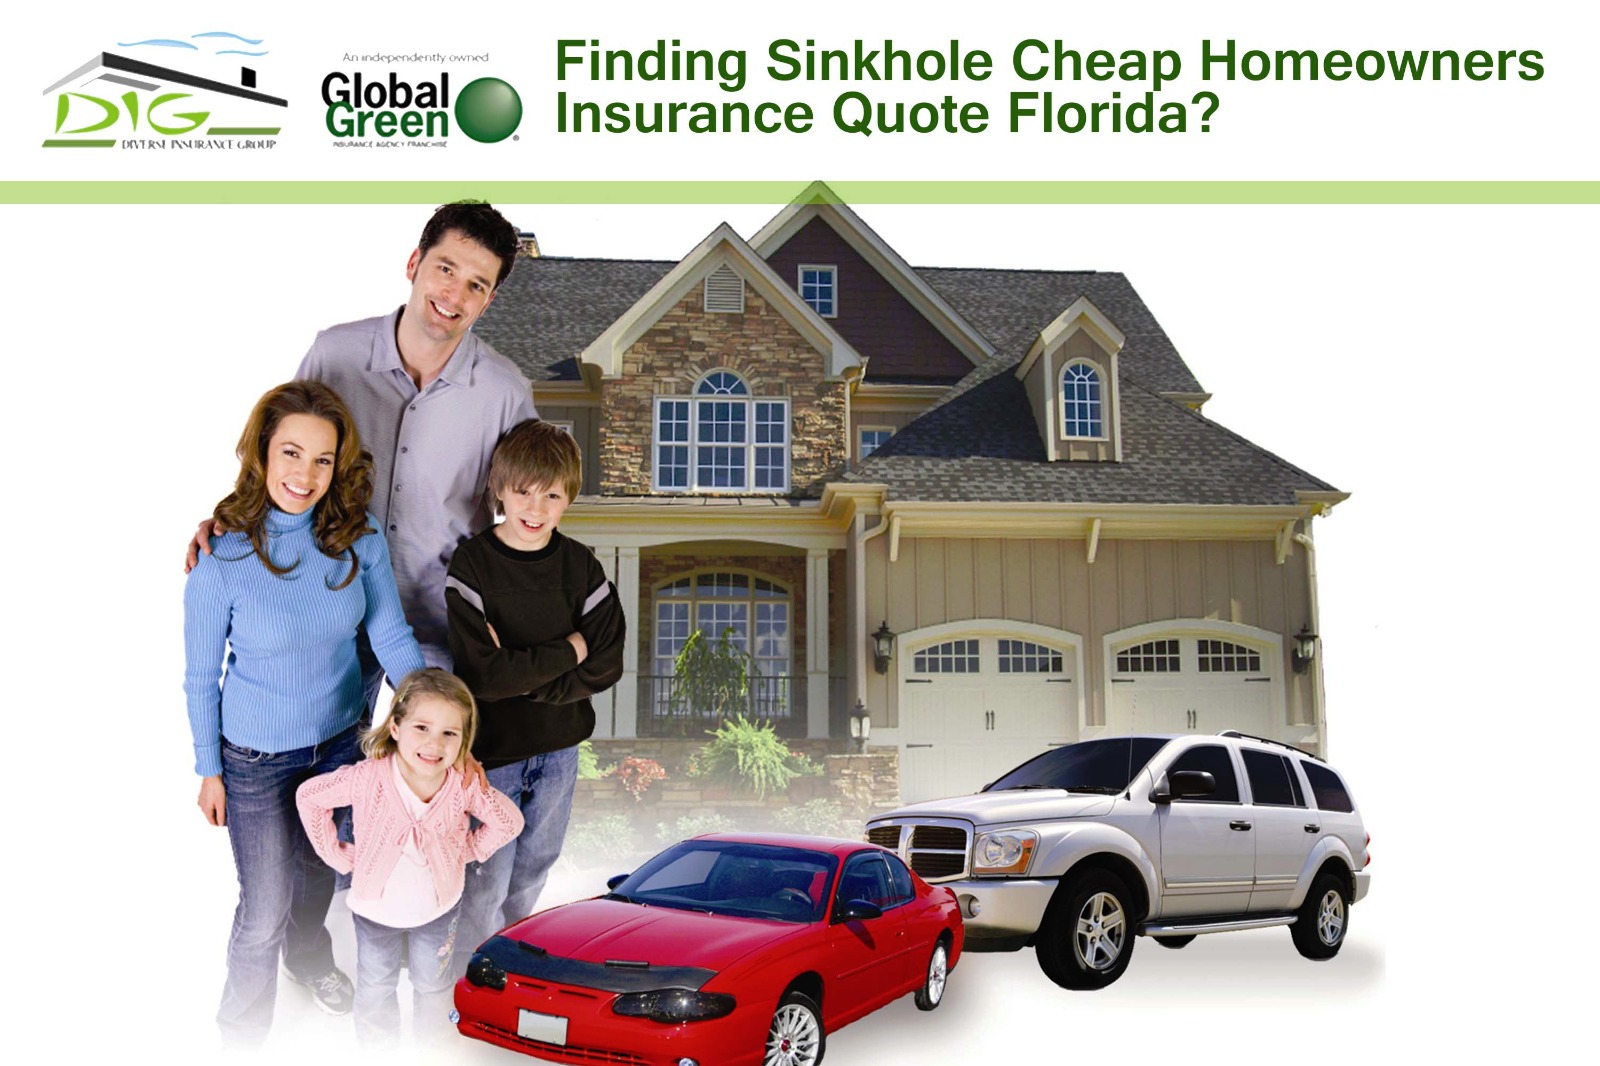 Finding Sinkhole Cheap Homeowners Insurance Quote Florida?. How Do You Treat Hypoglycemia. Child Psychologist Education And Training. Office Carpet Cleaning Services. Jackie Cooper Bmw Edmond Ok Asp Net School. Assisted Living Facilities Richmond Va. Retail Industry Life Cycle Shadow Tracker Gps. How Can I Restore My Credit Newest Car Ever. How To Build Business Credit